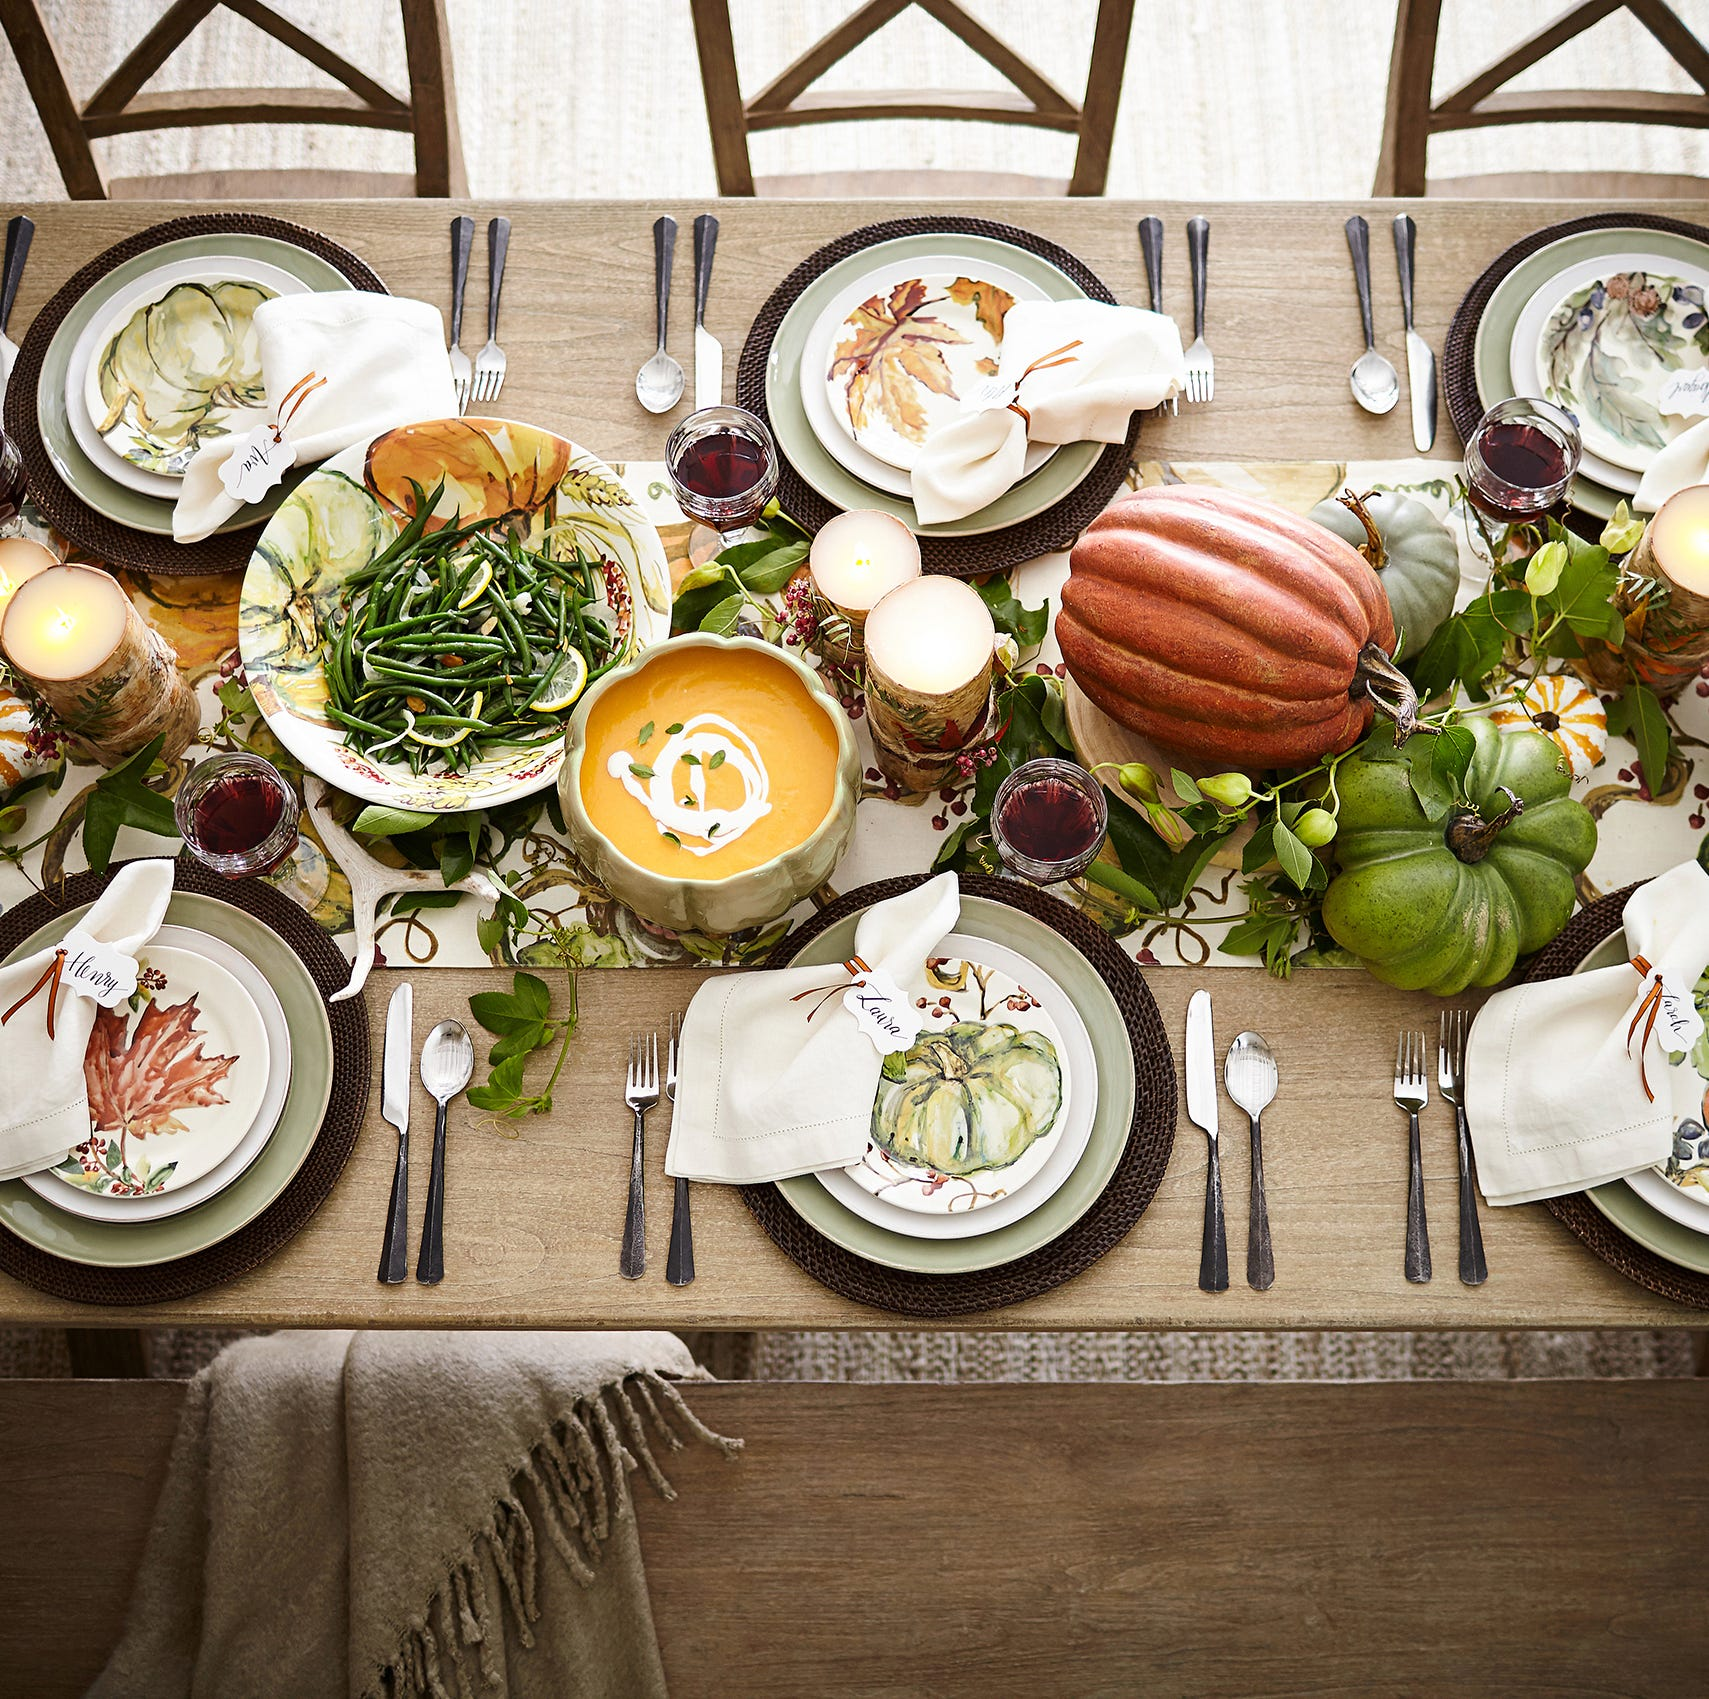 Find the right trimmings for your holiday tabletop